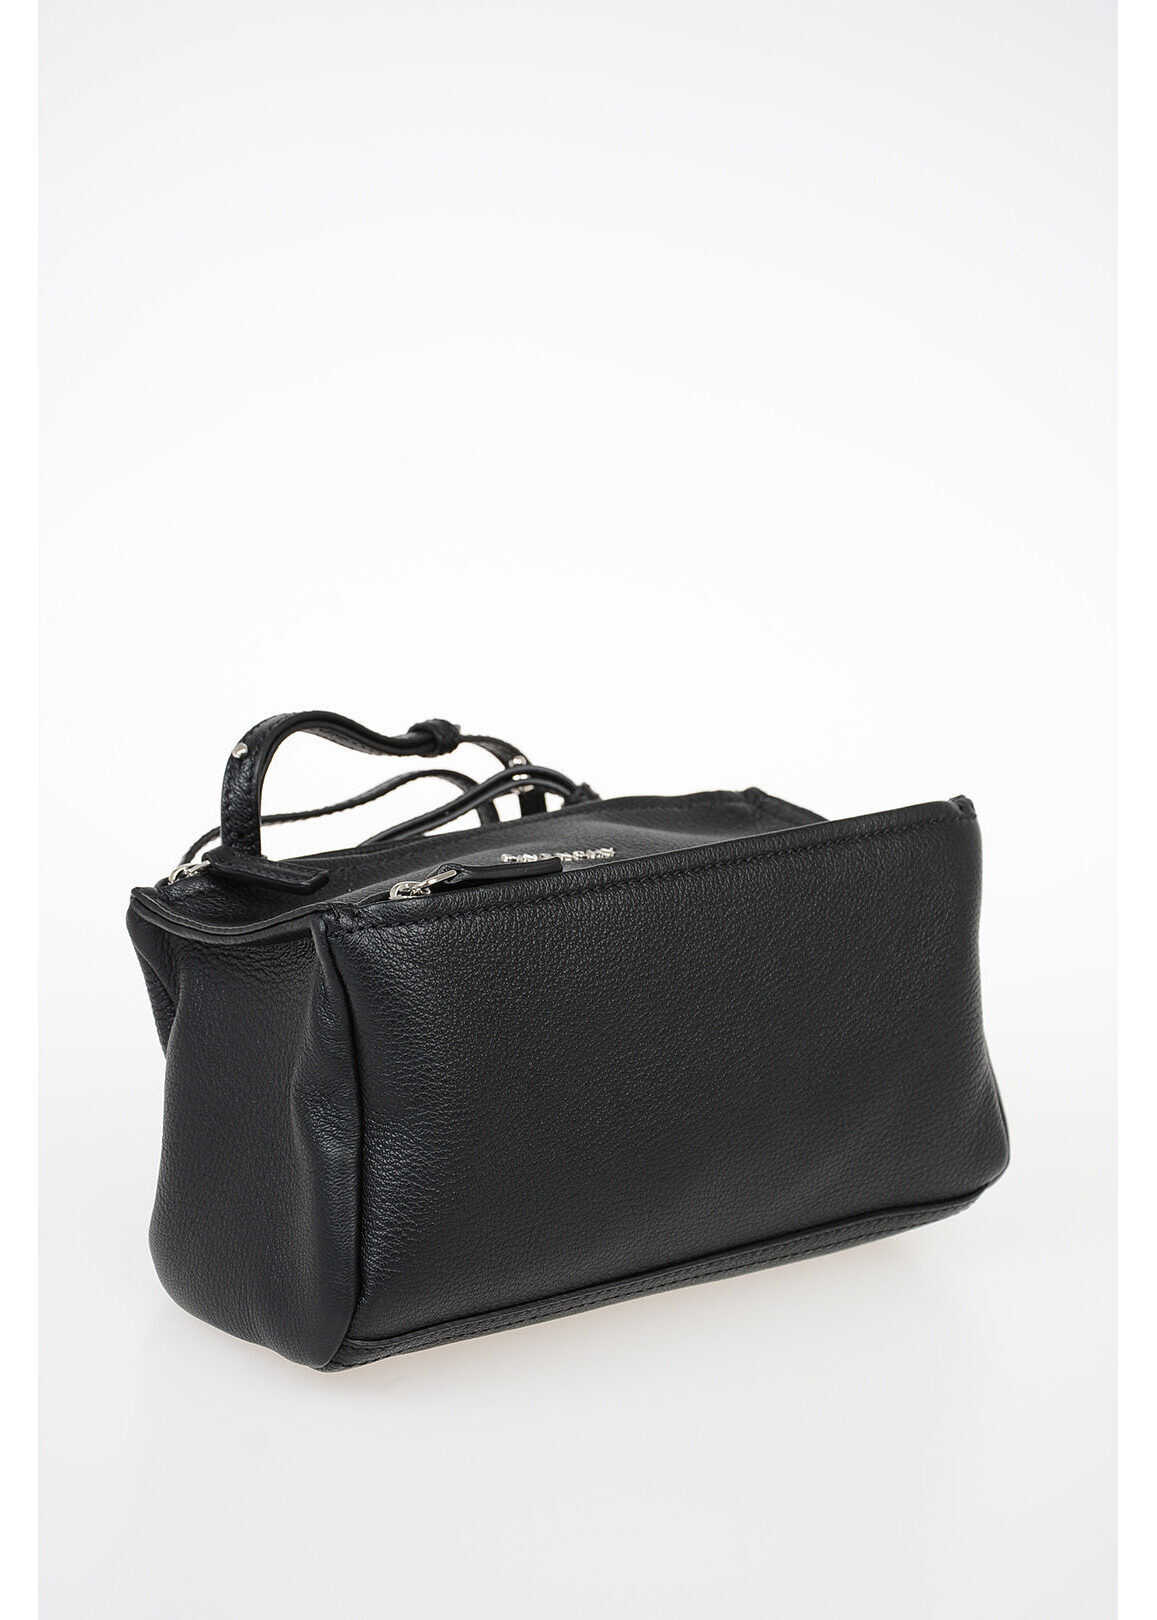 Givenchy Leather PANDORA Bowler bag with Shoulder Strap BLACK imagine b-mall.ro